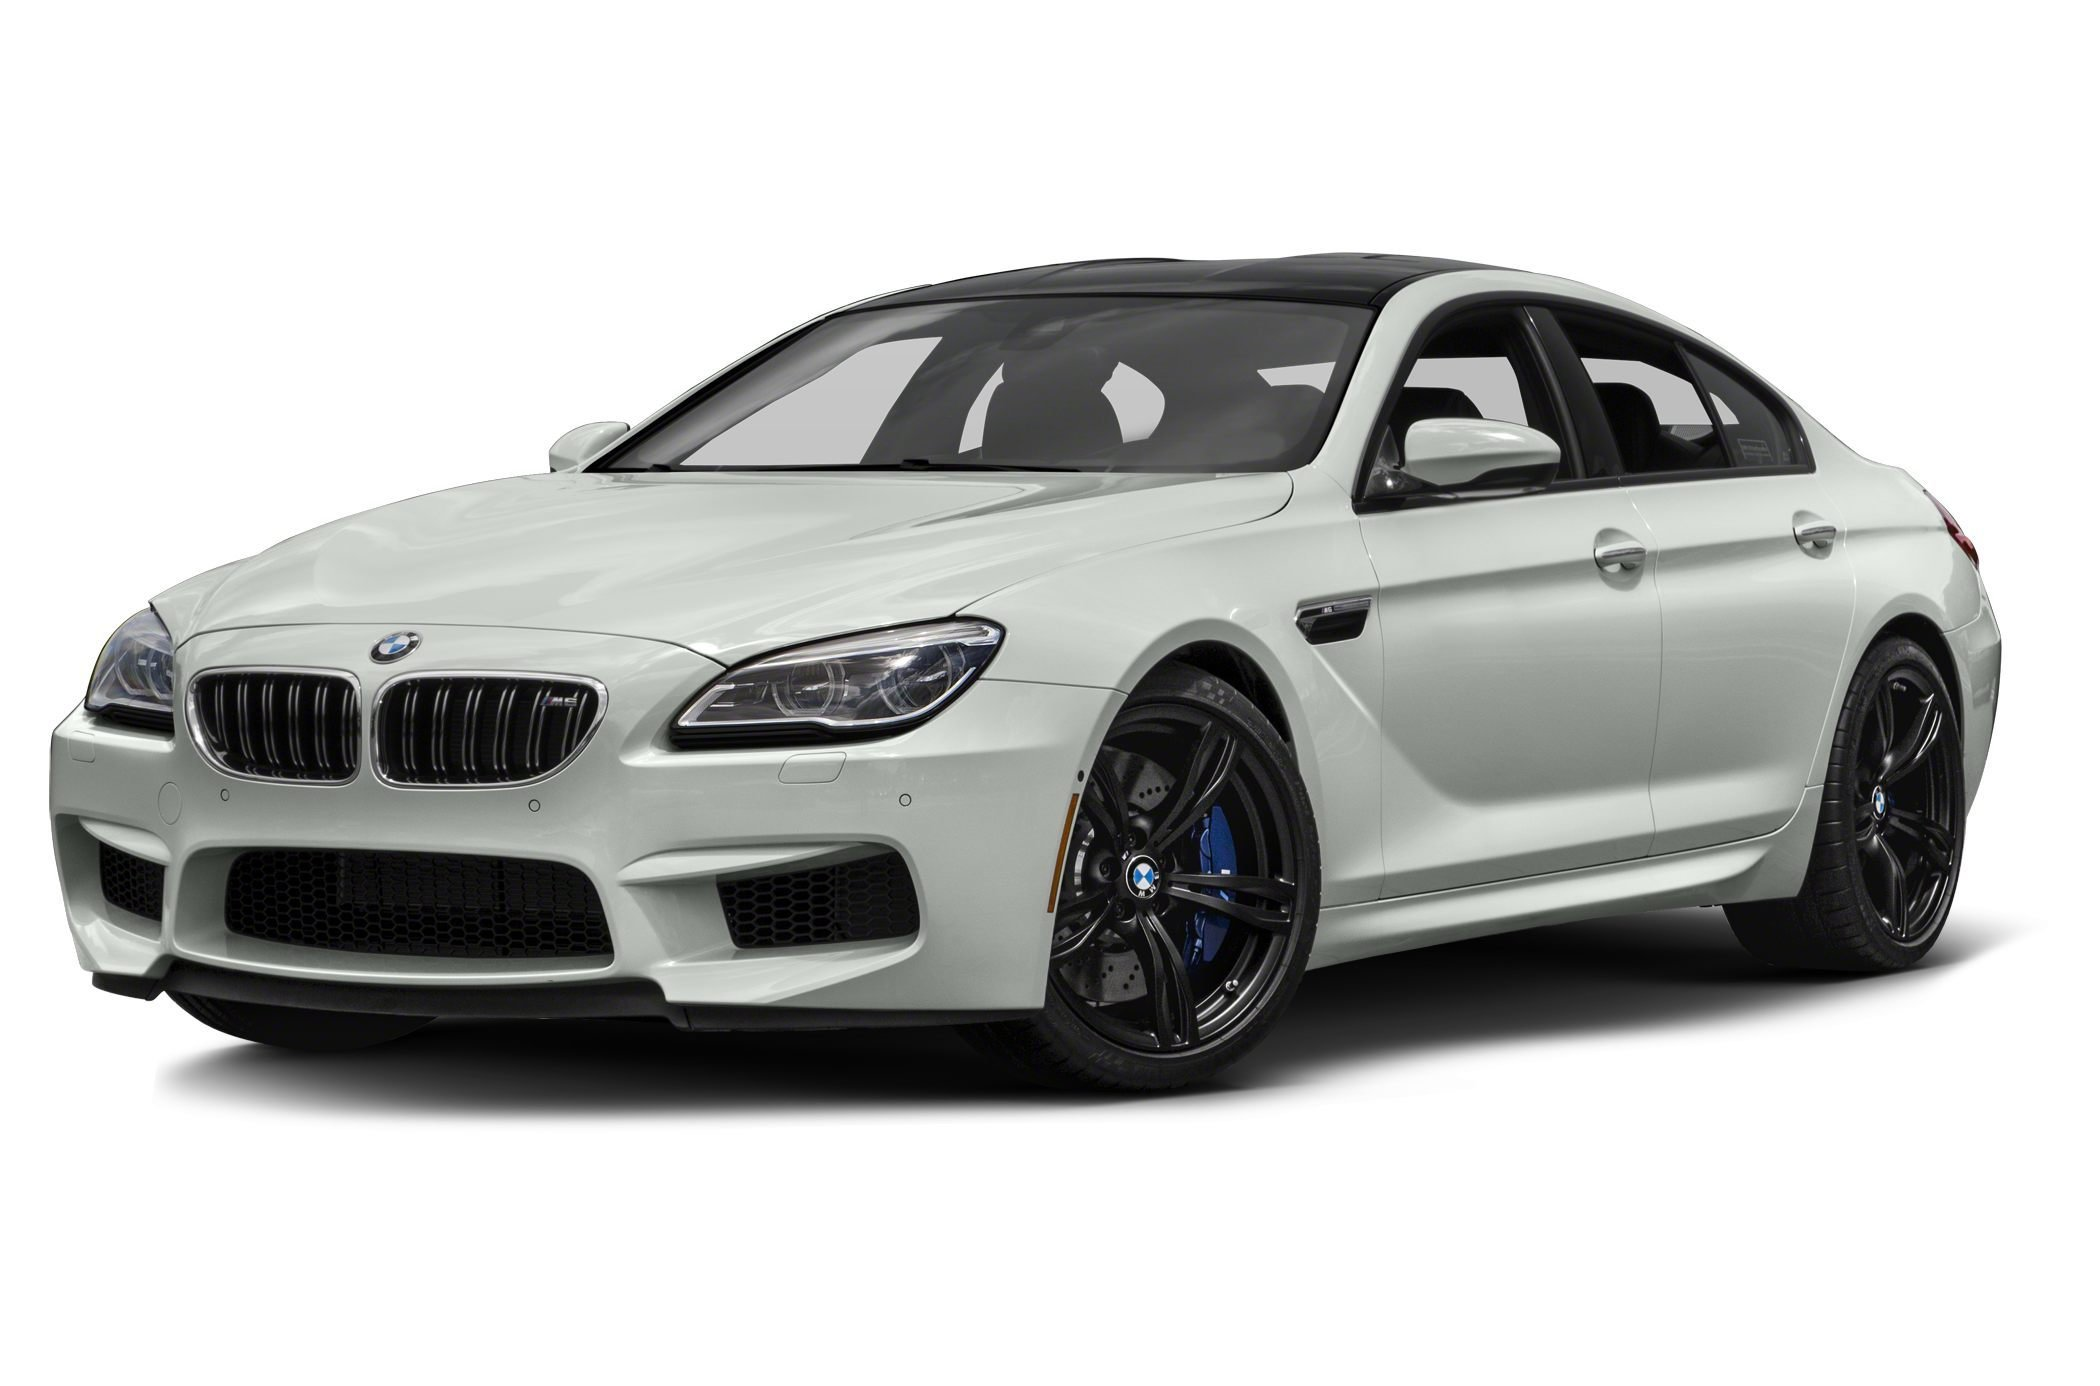 Latest 2016 Bmw 6 Series Gran Coupe Convertible Price Car Free Download